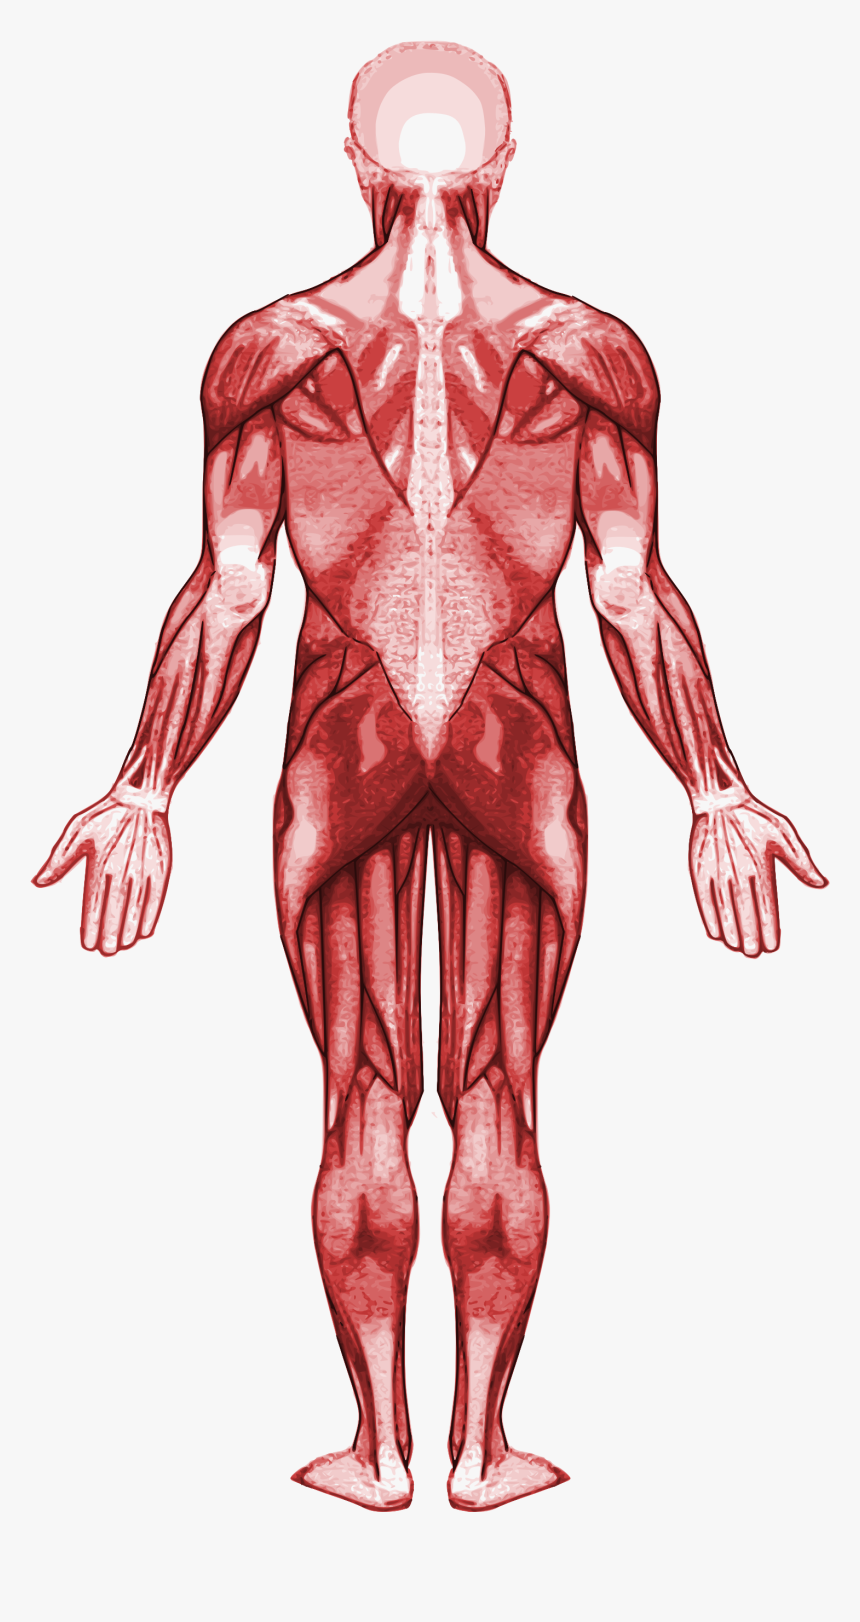 Muscle Clipart Muscular System - Gastrocnemius Muscle, HD Png Download, Free Download